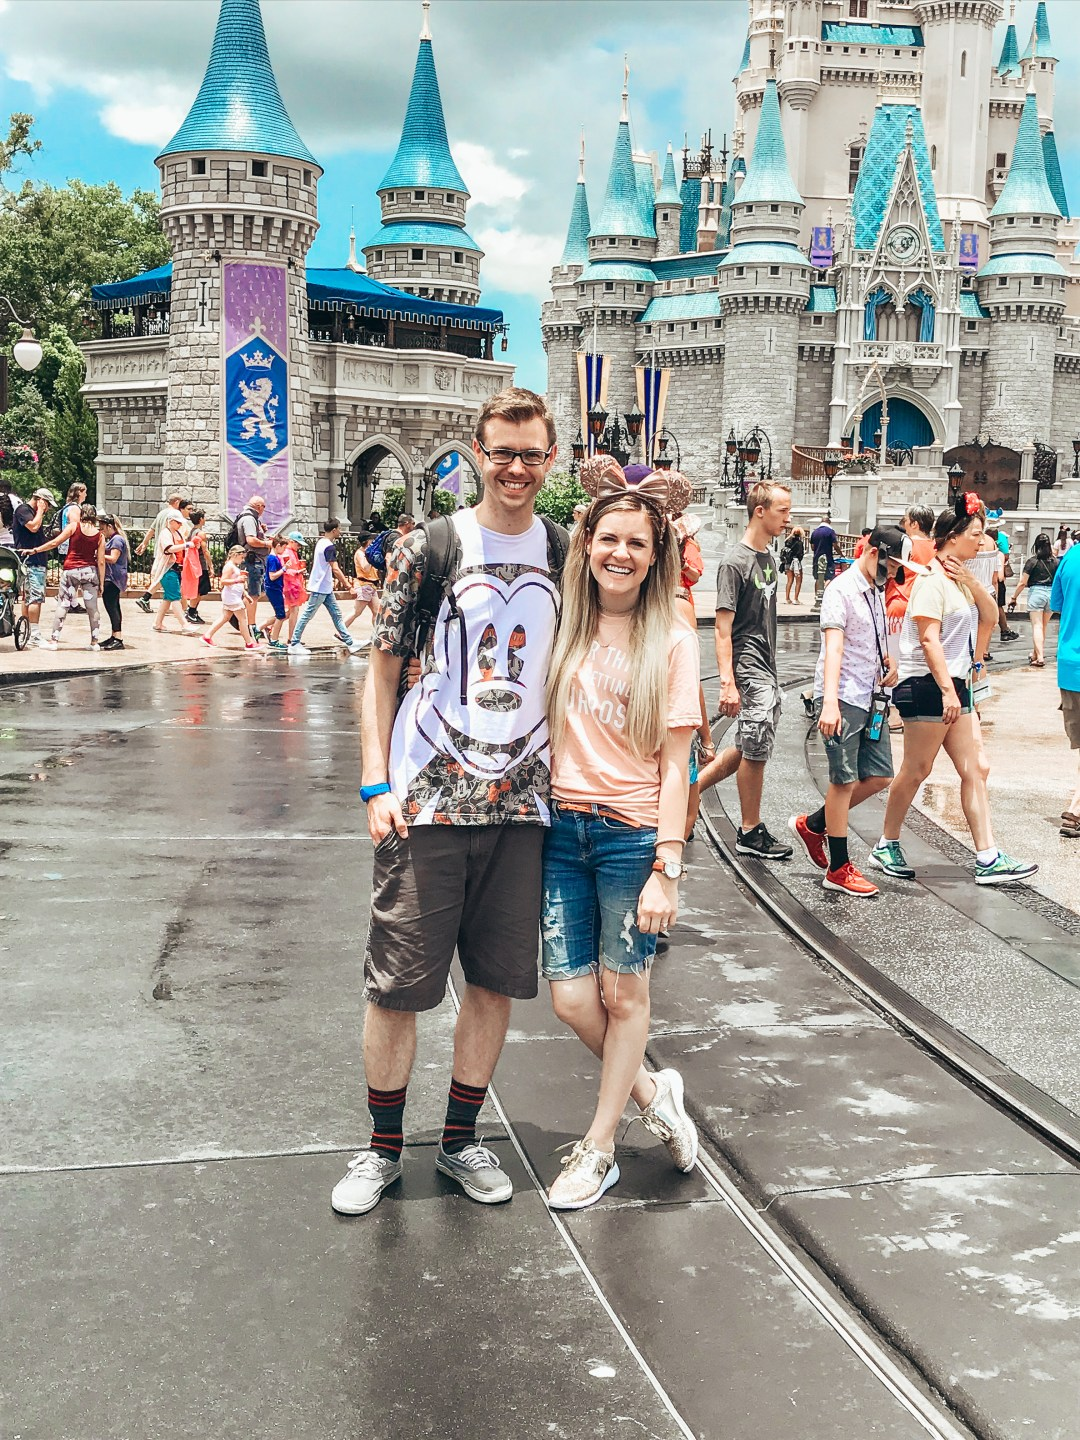 Things For Adults in Walt Disney World